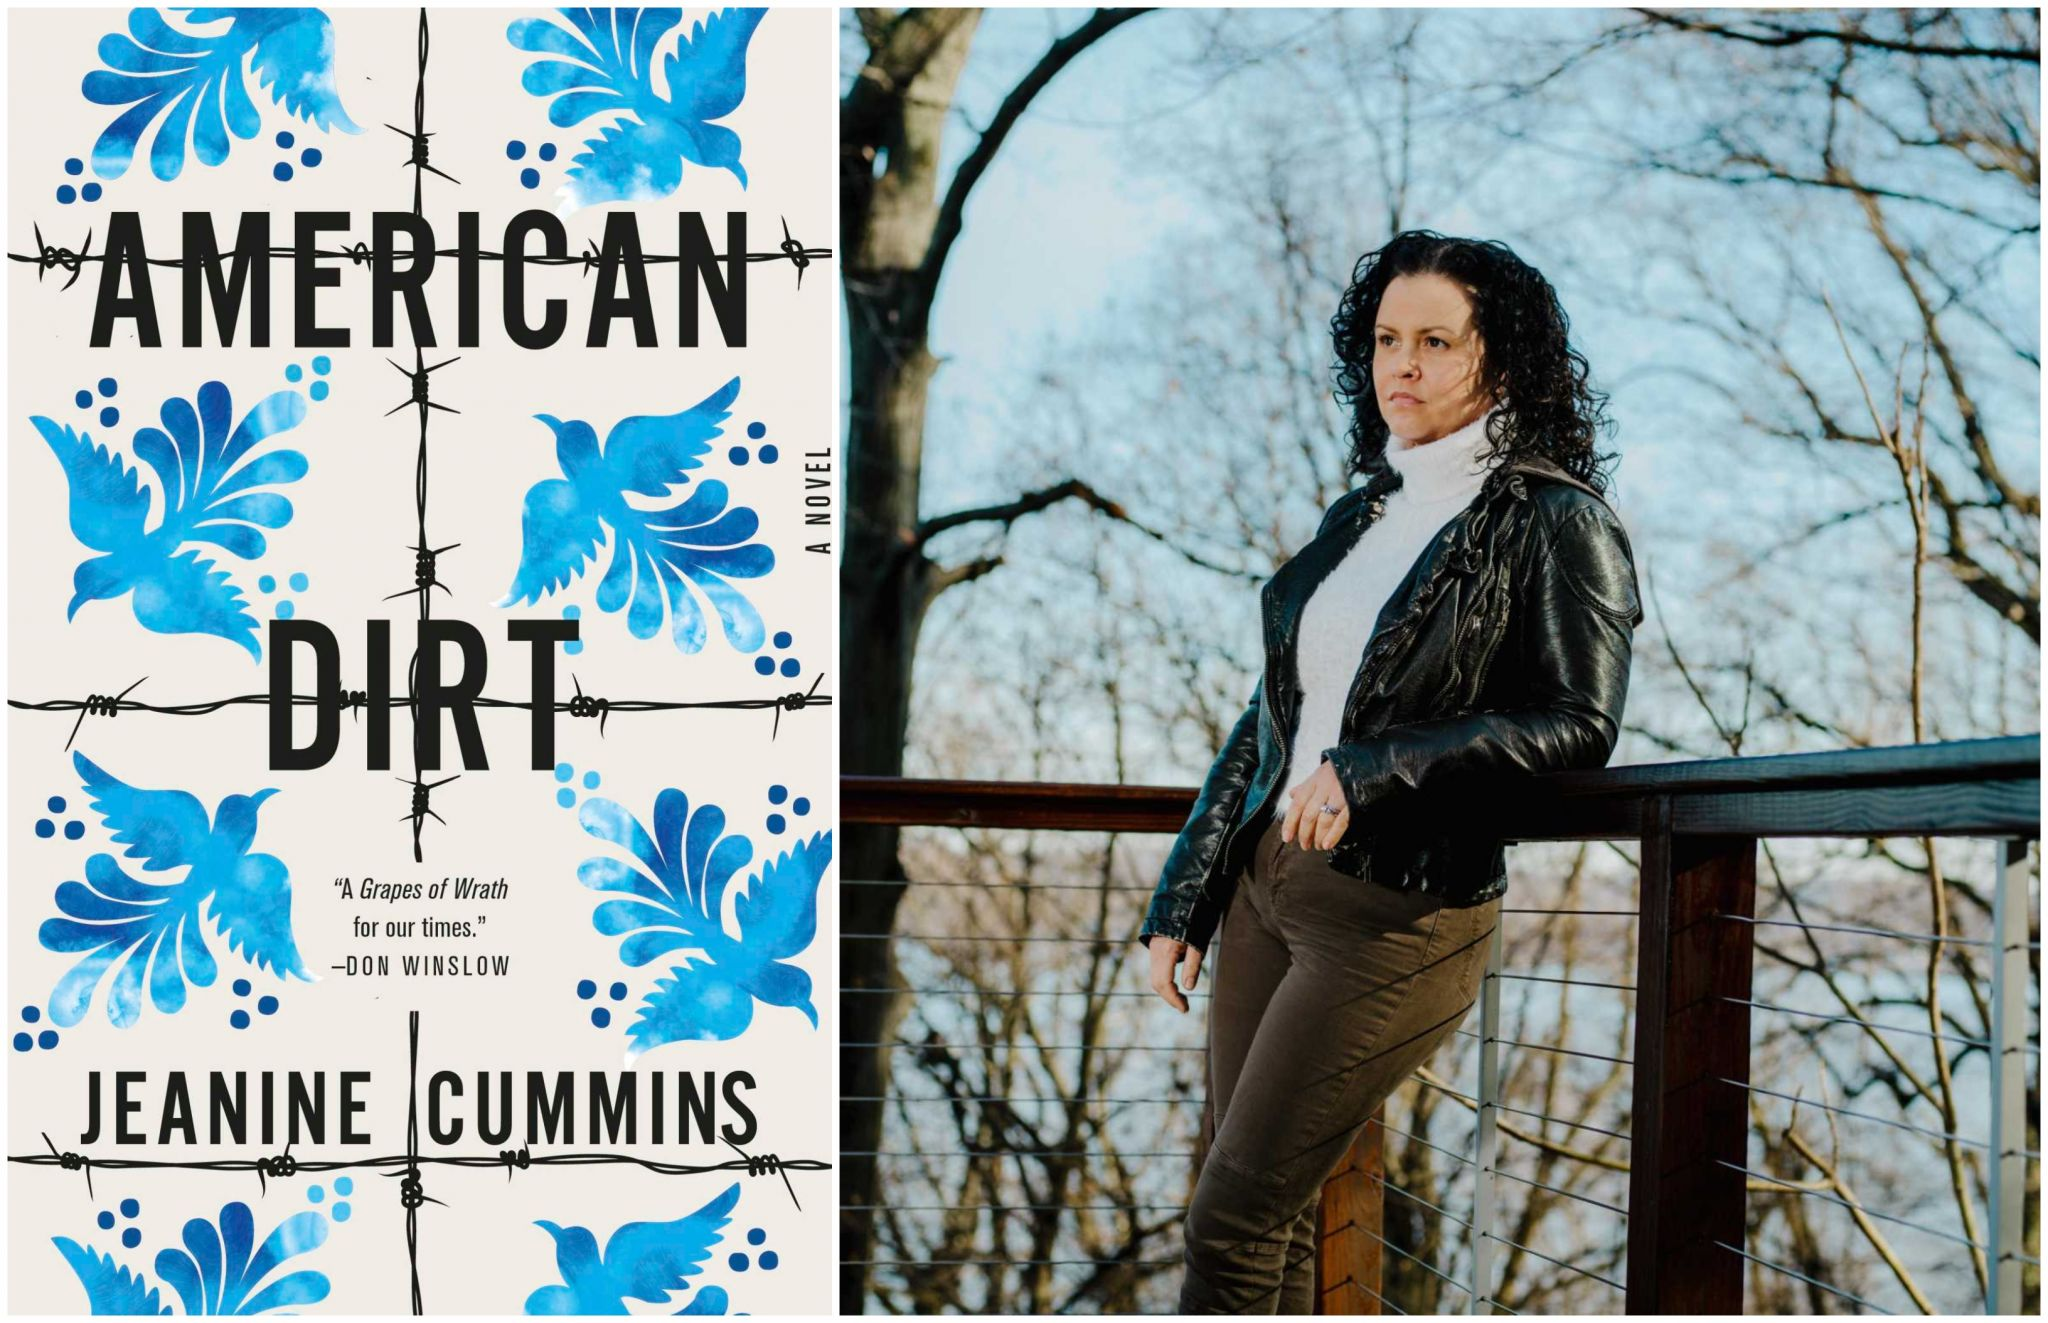 Houston bookstore cancels 'American Dirt' author appearance